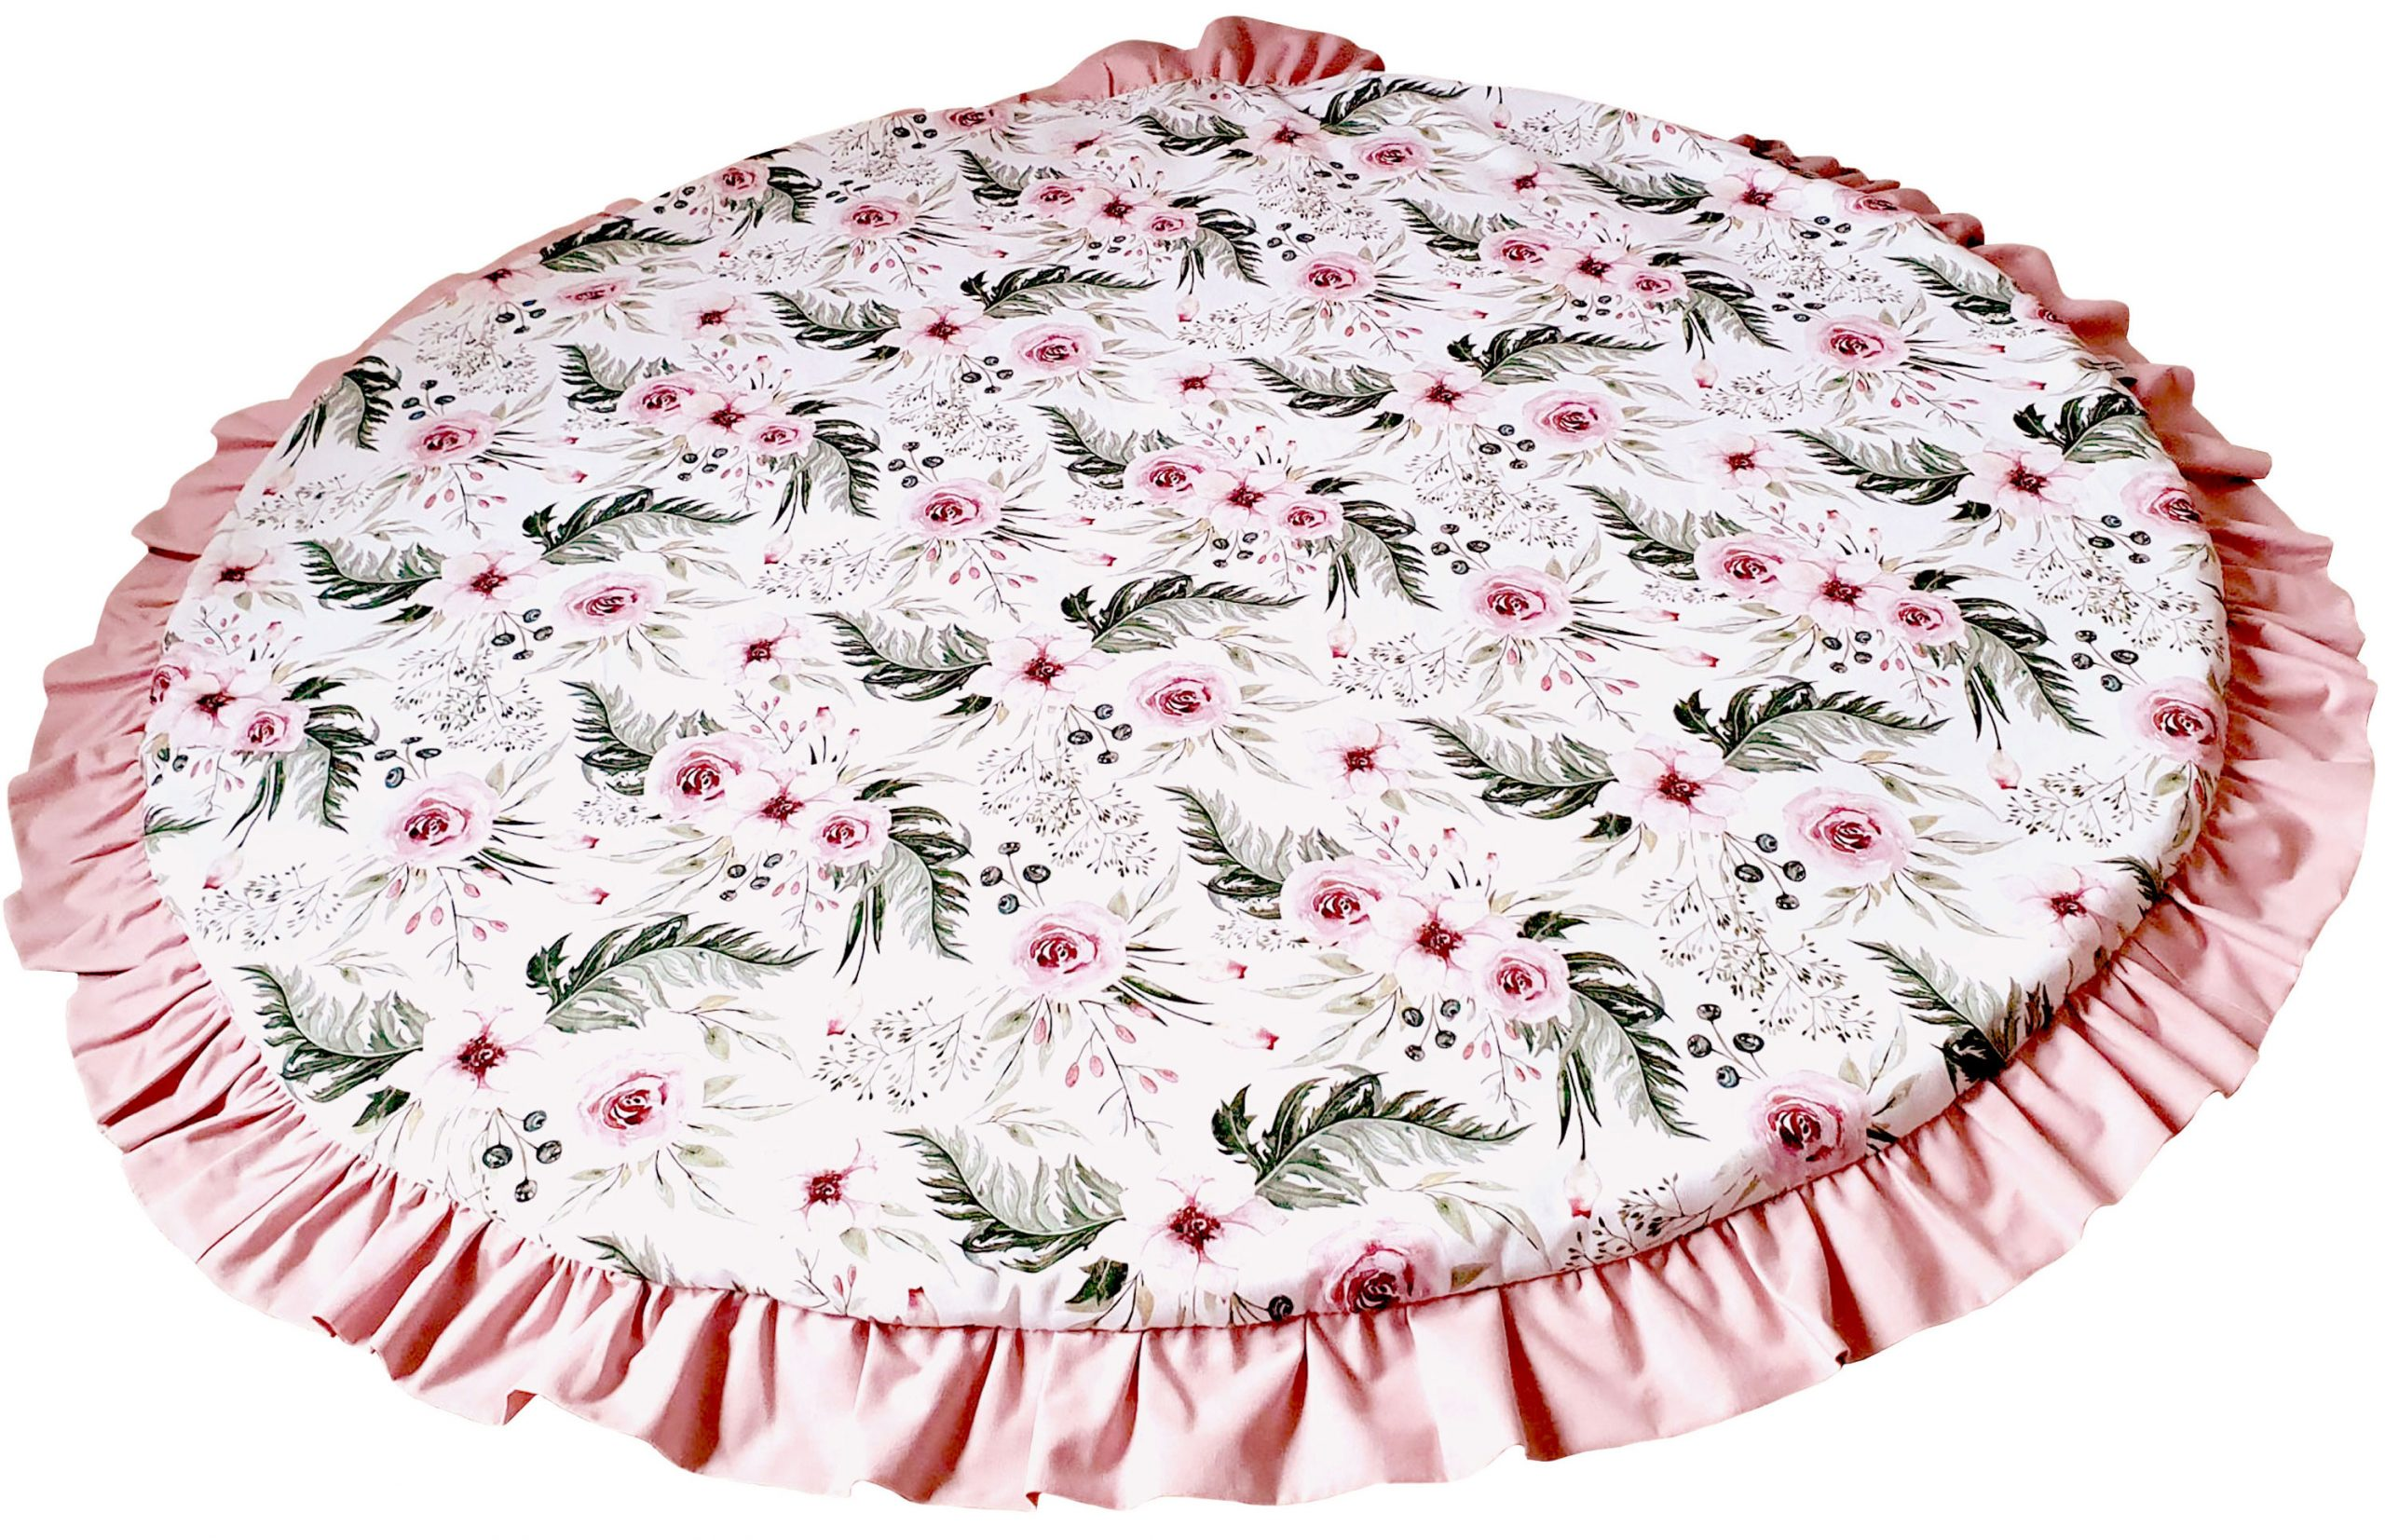 Flowers-and-pink-cotton-floor-mat